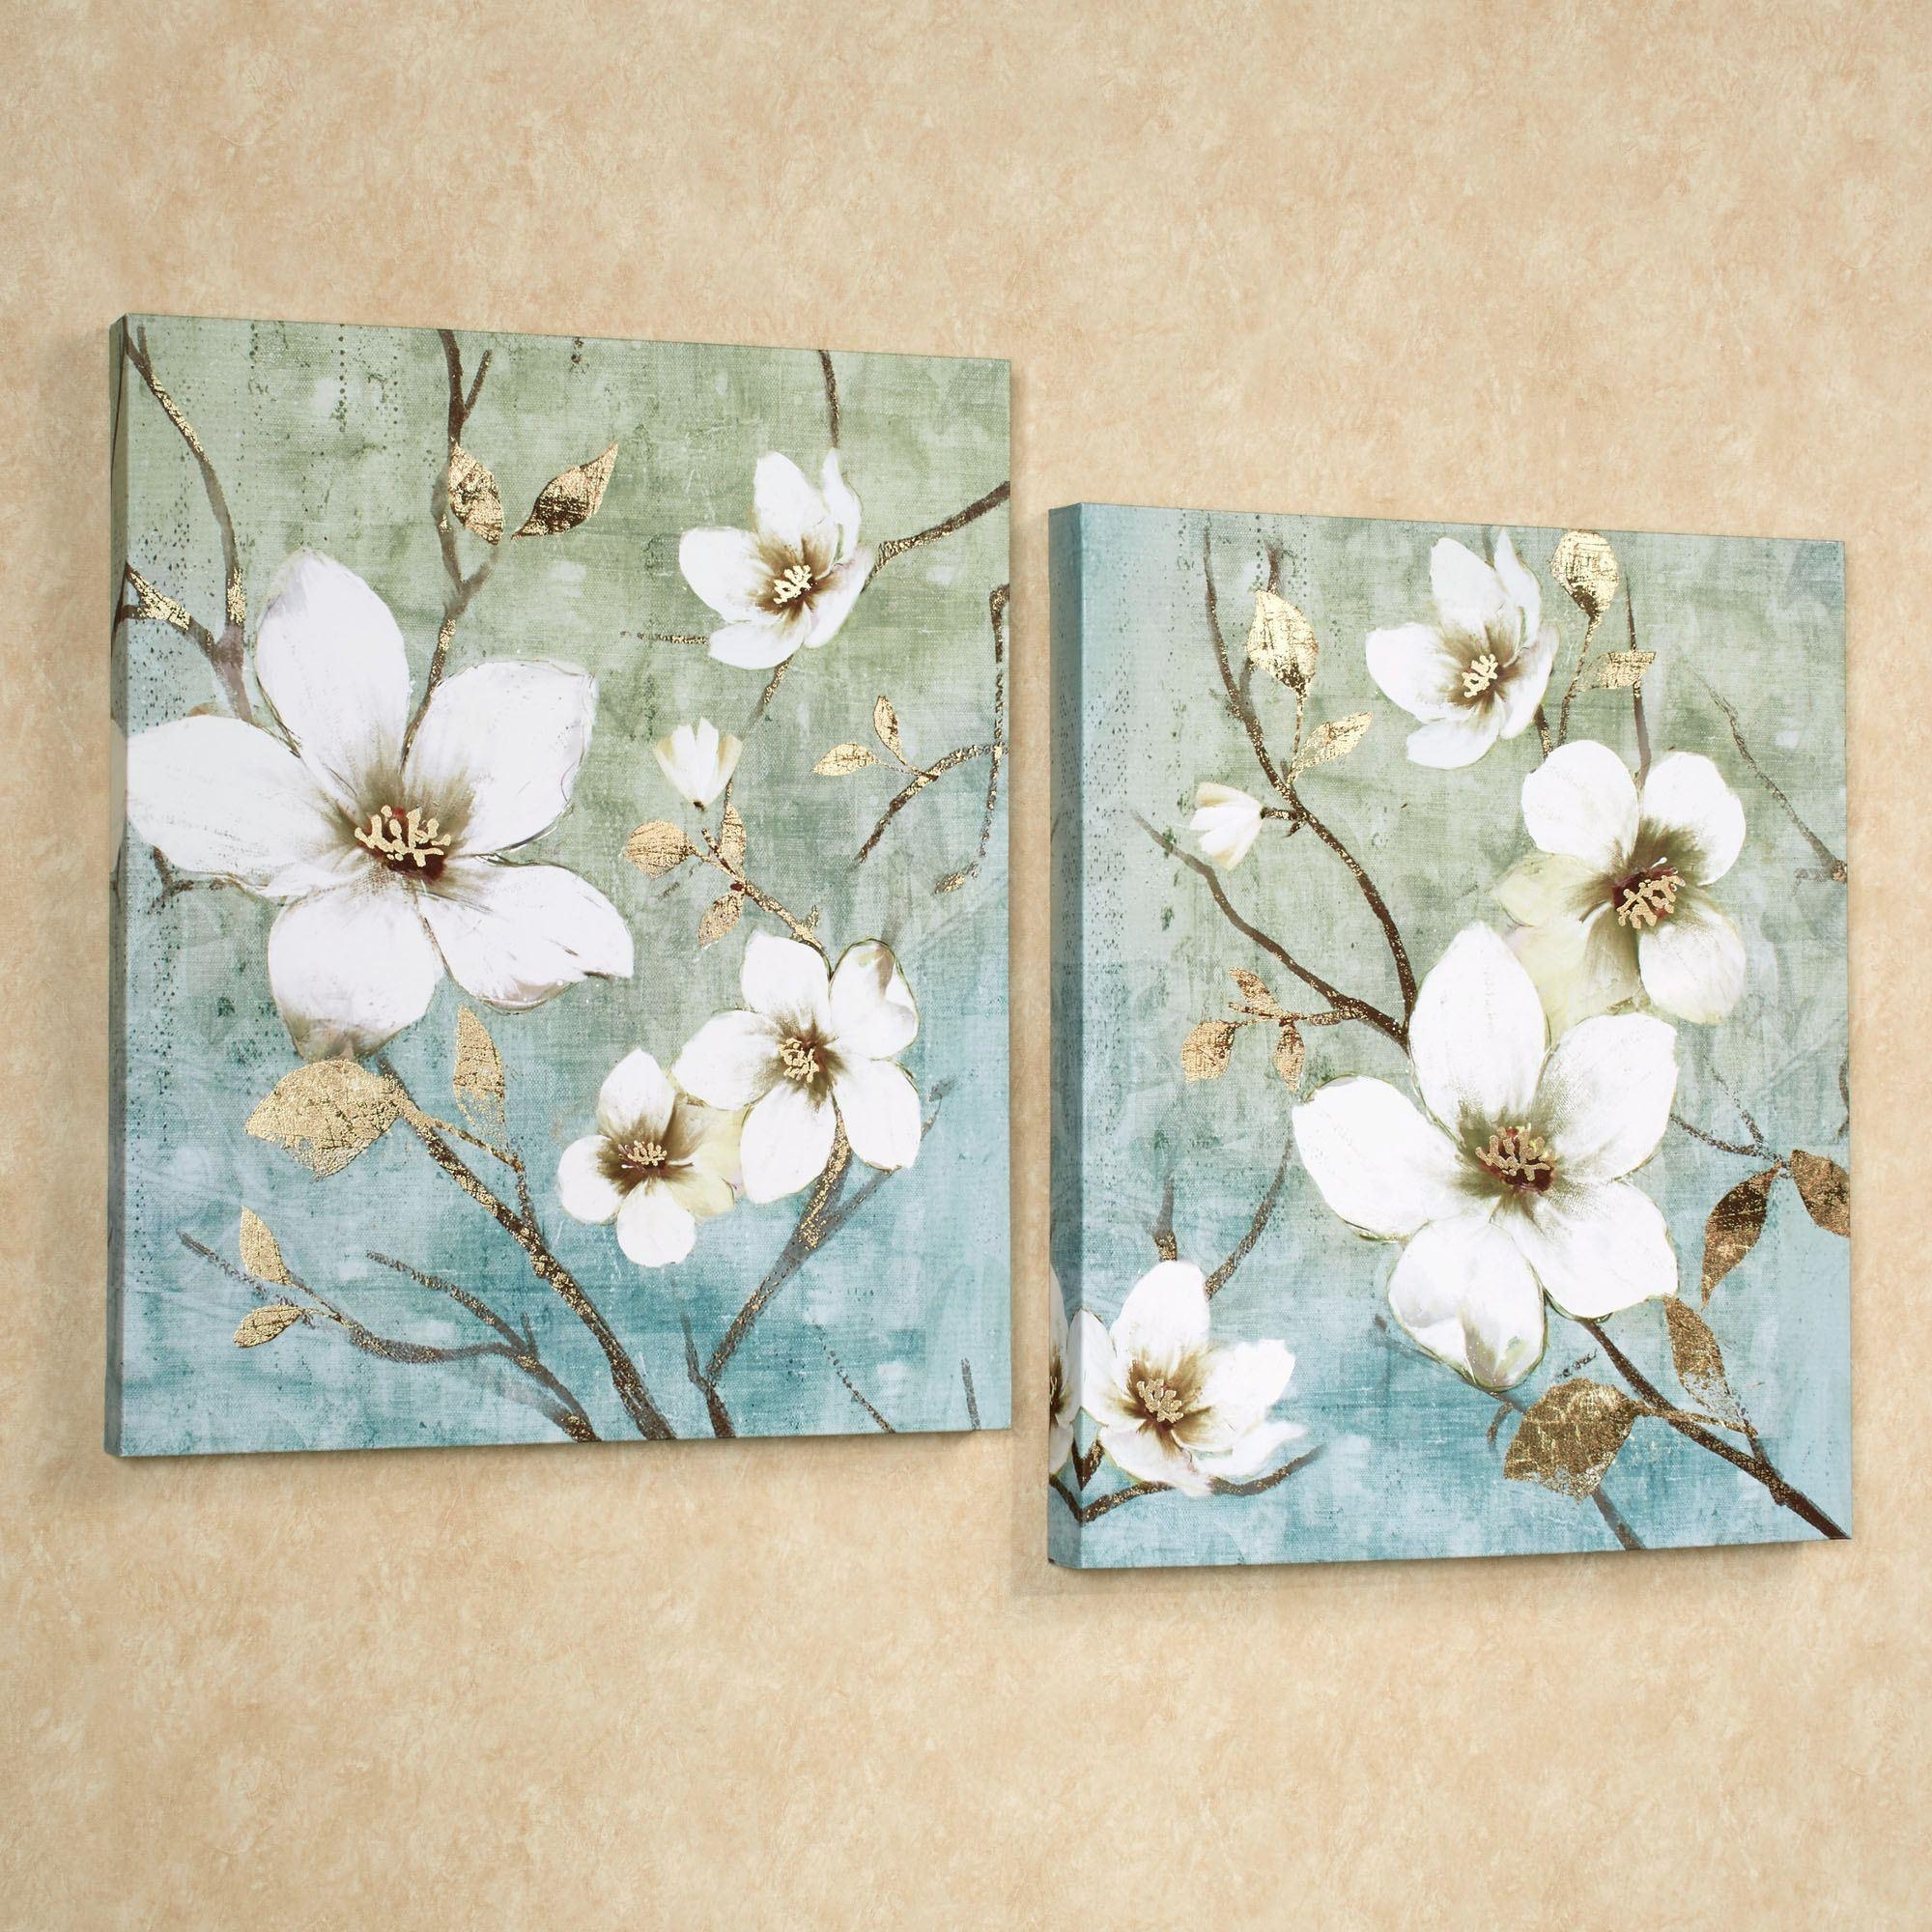 In Bloom Floral Canvas Wall Art Set inside Teal Flower Canvas Wall Art